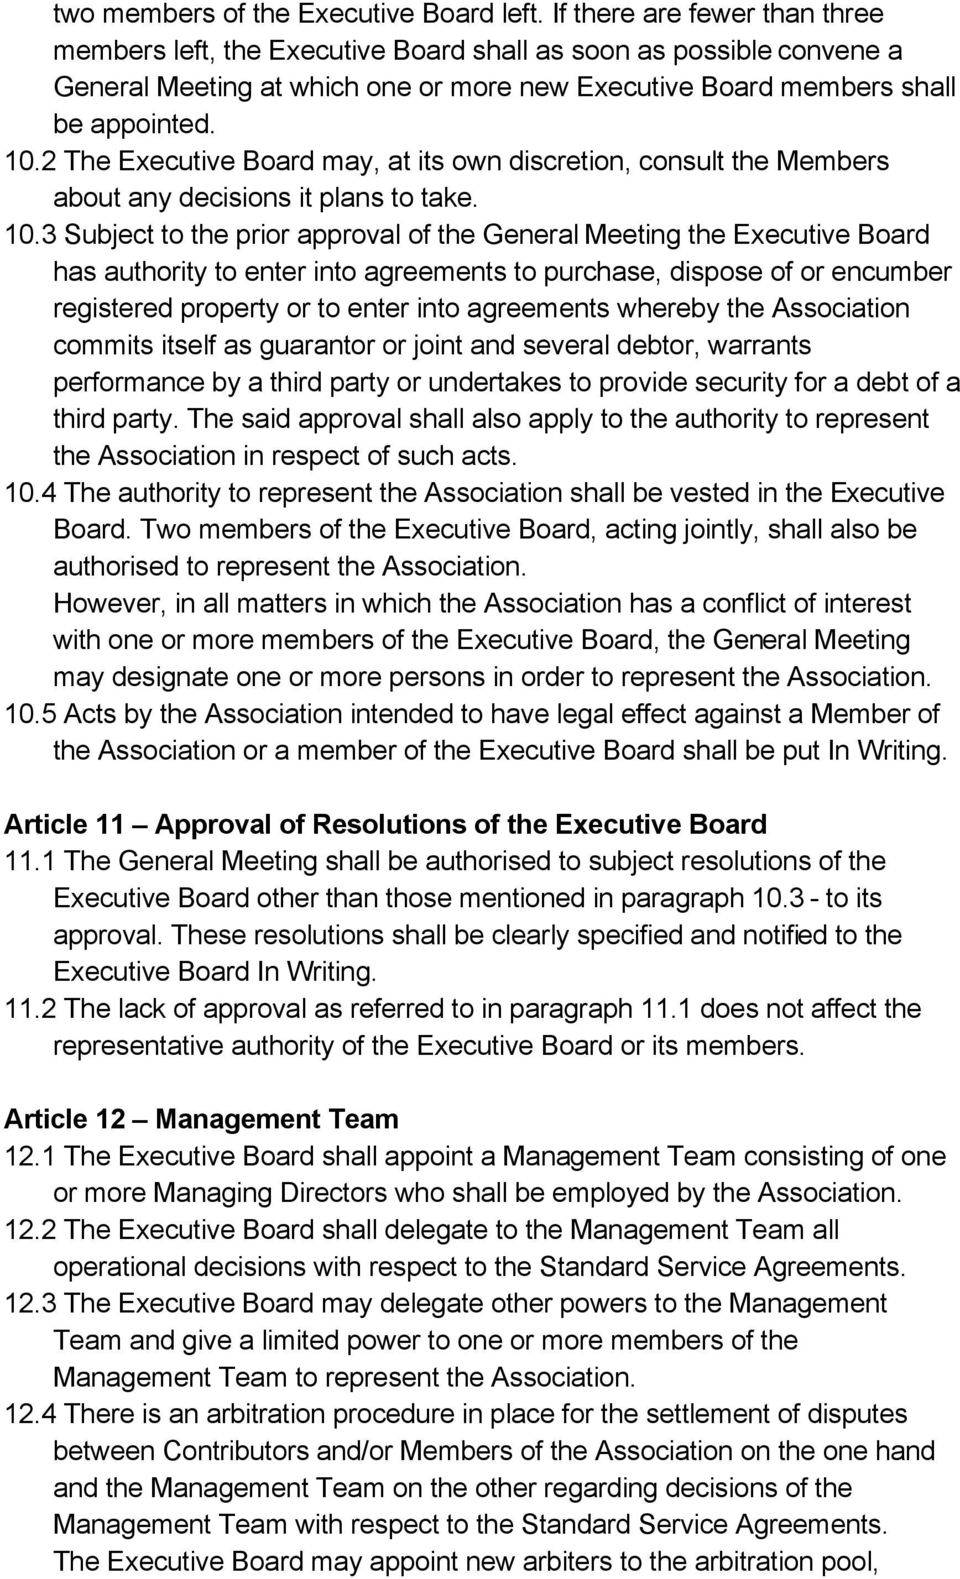 2 The Executive Board may, at its own discretion, consult the Members about any decisions it plans to take. 10.